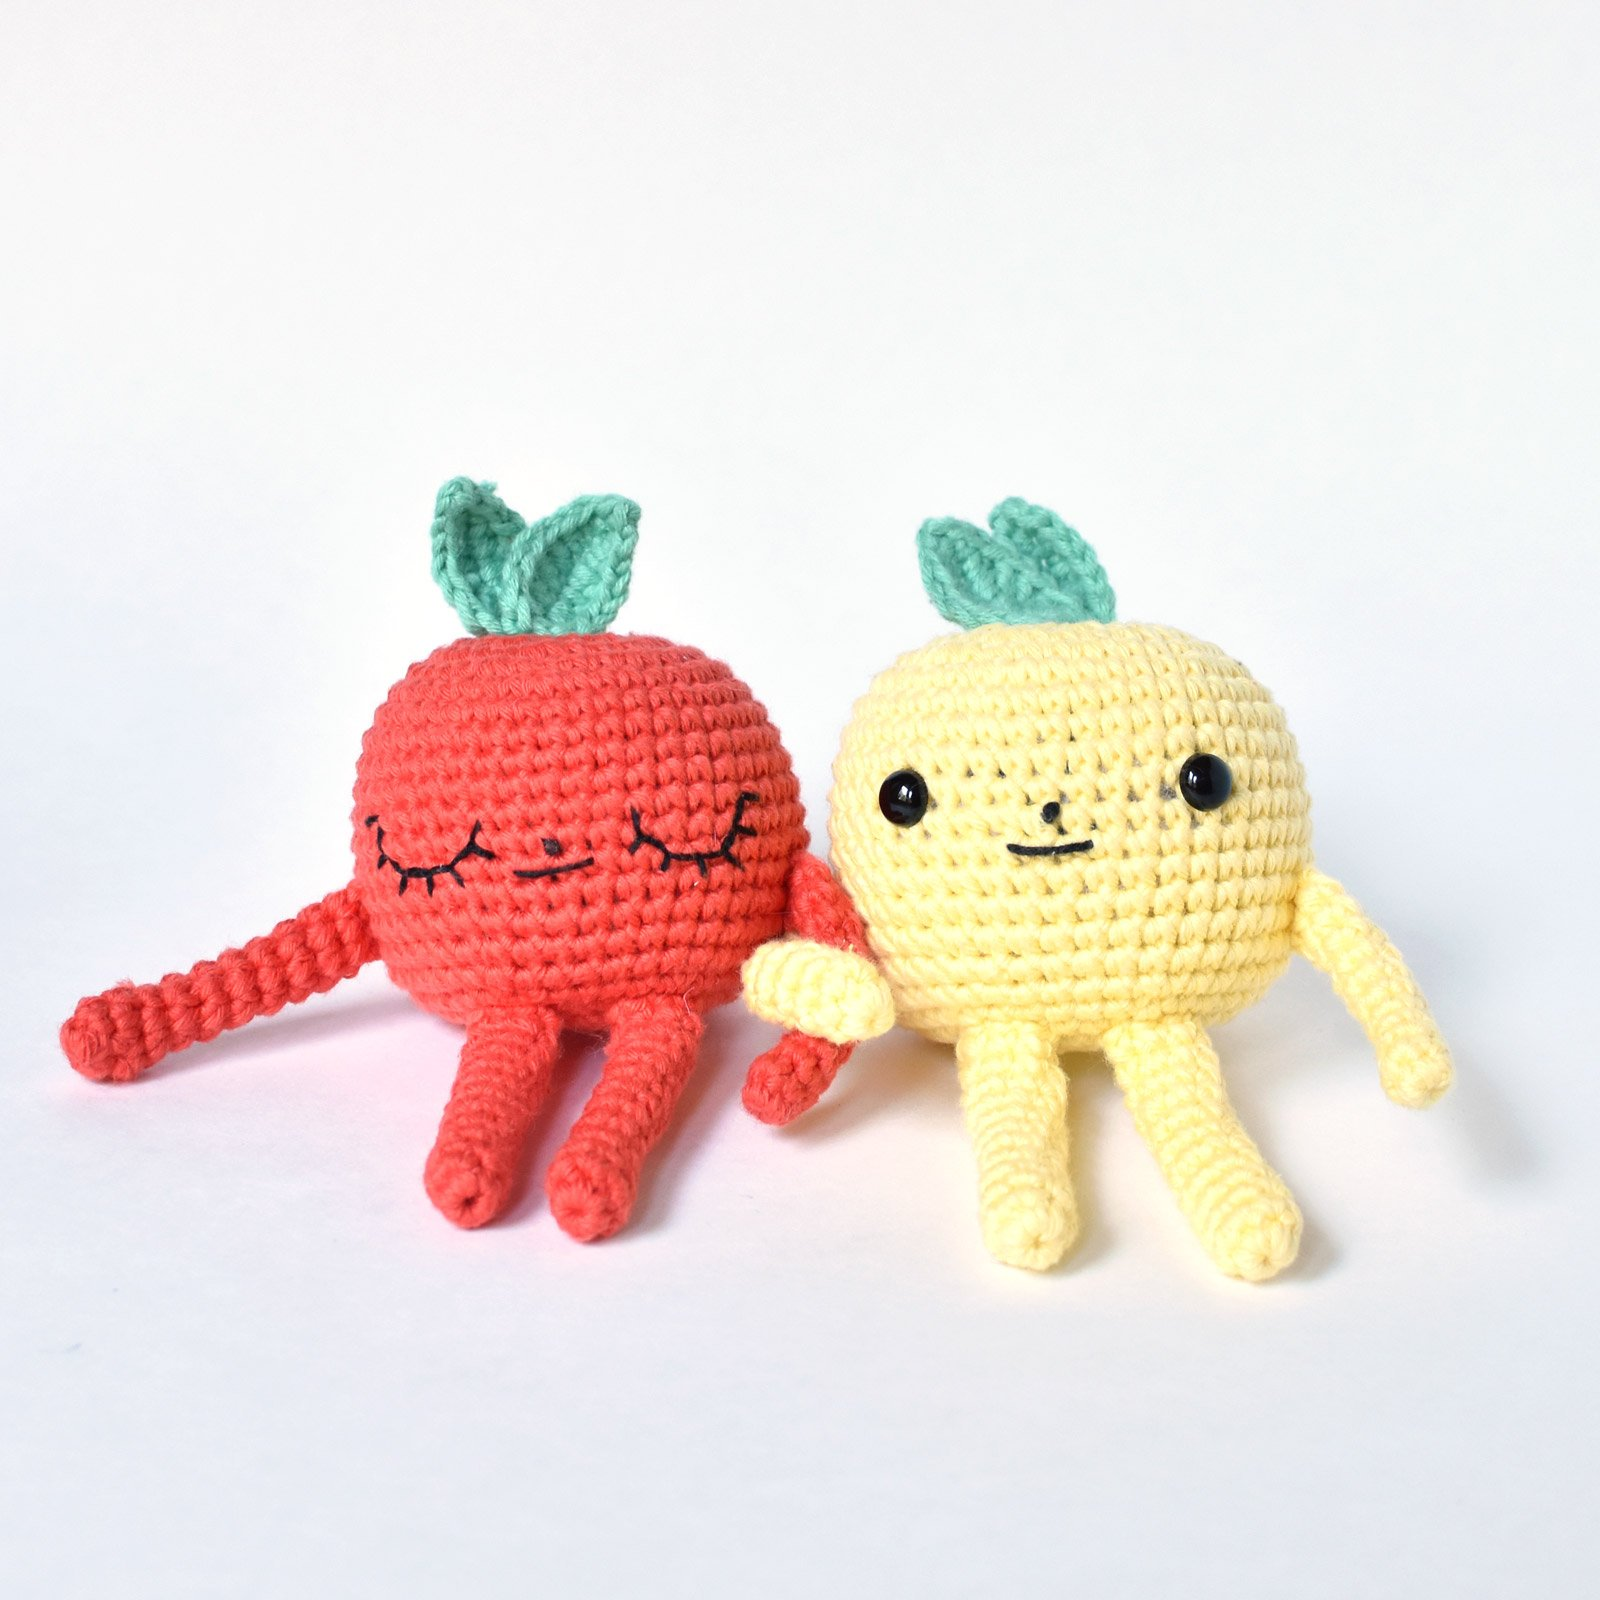 A red and yellow crochet apple with arms linked.